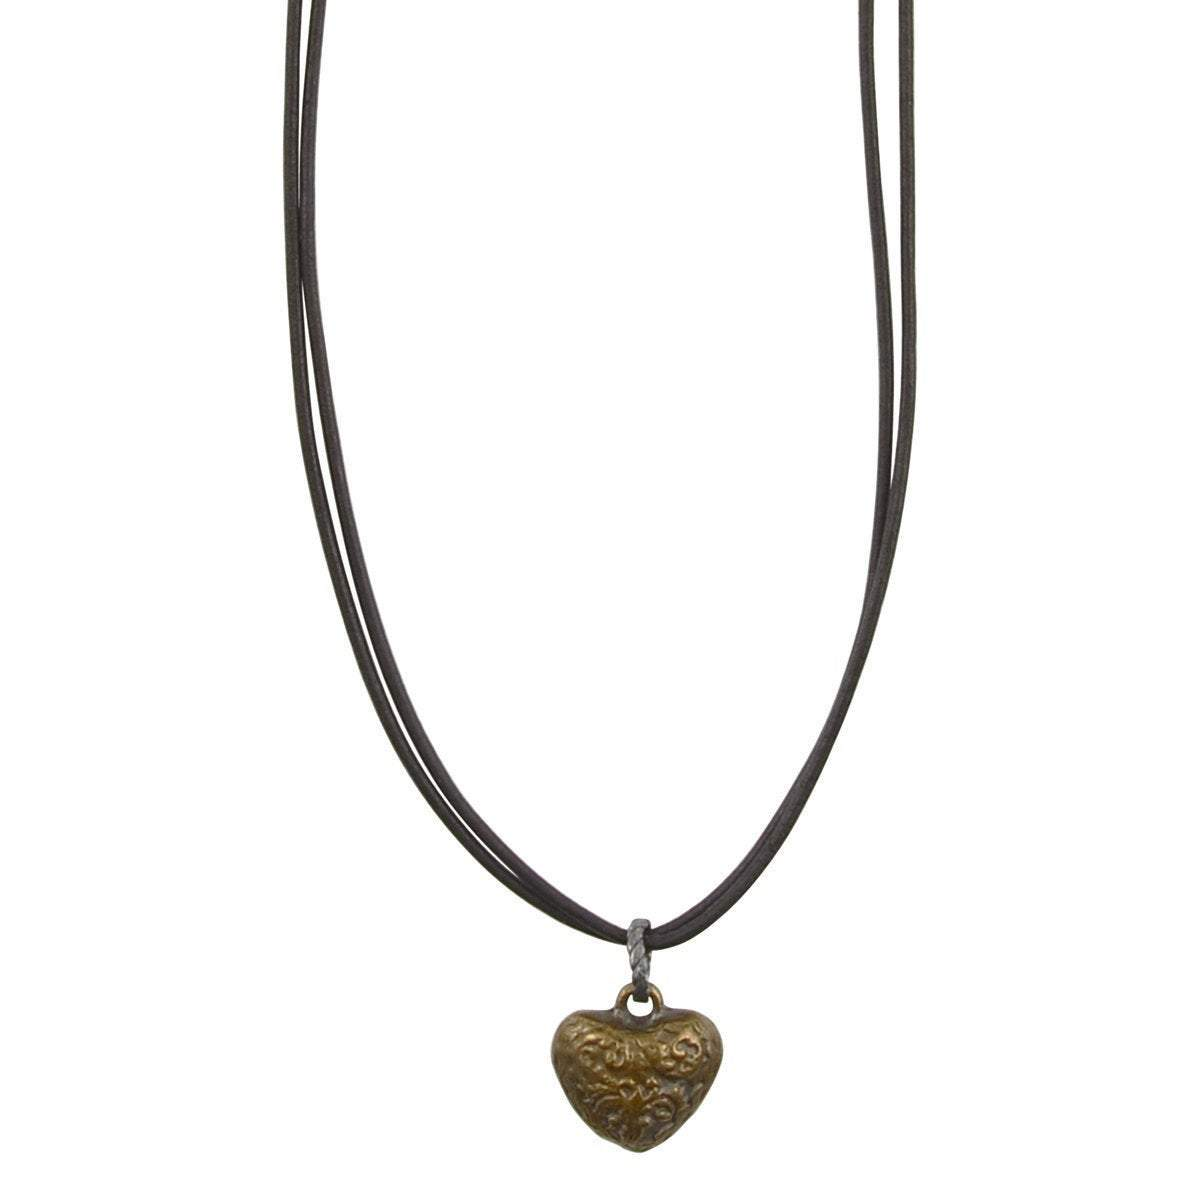 Leather Jewelry-Ornate Heart Necklace-Antique Bronze